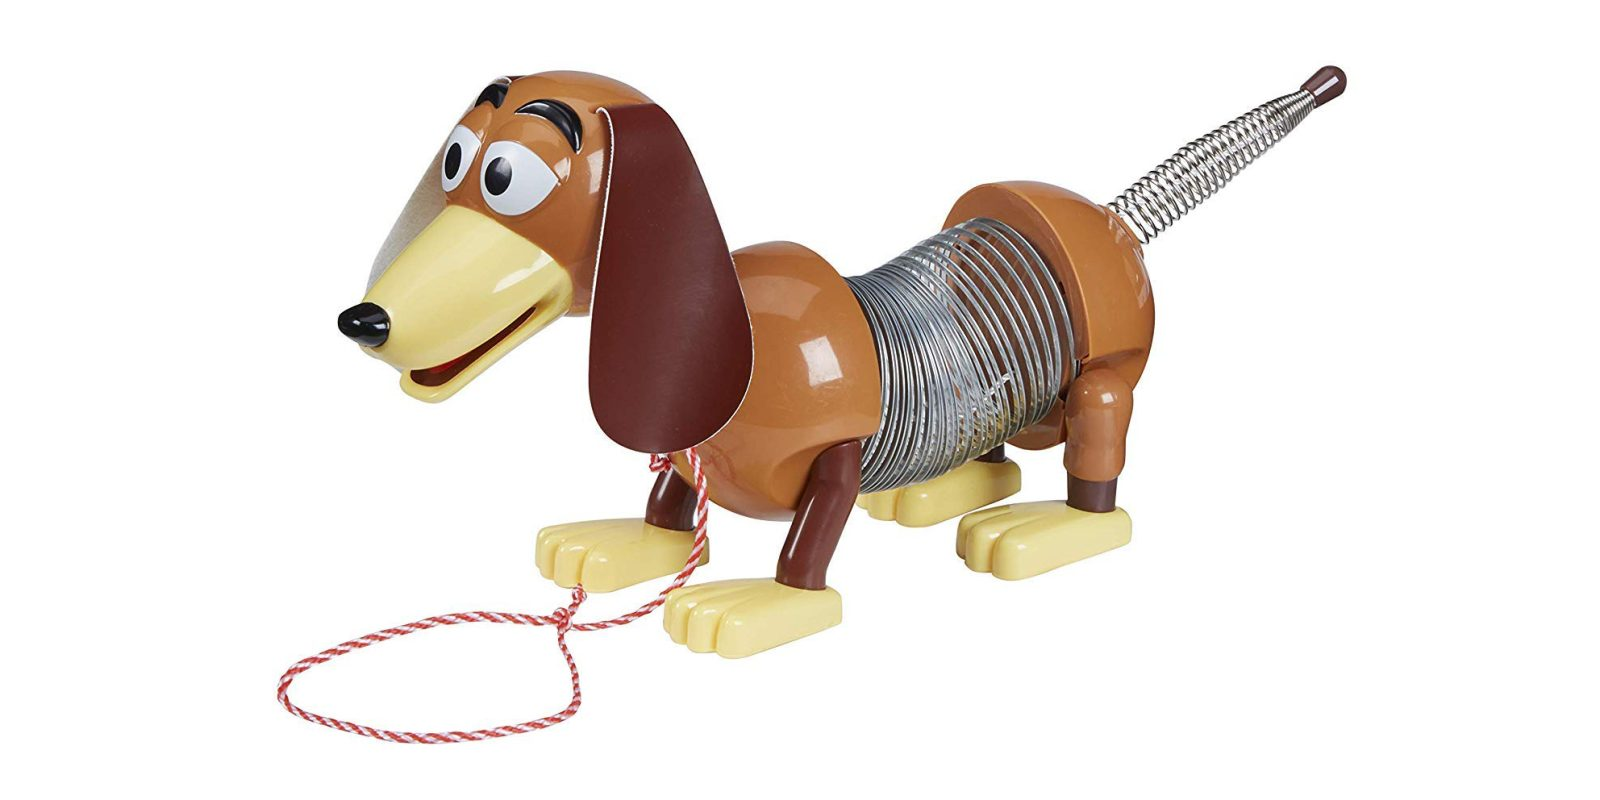 Bring home Slinky Dog from Toy Story at just $15 via Amazon (Reg. $25)